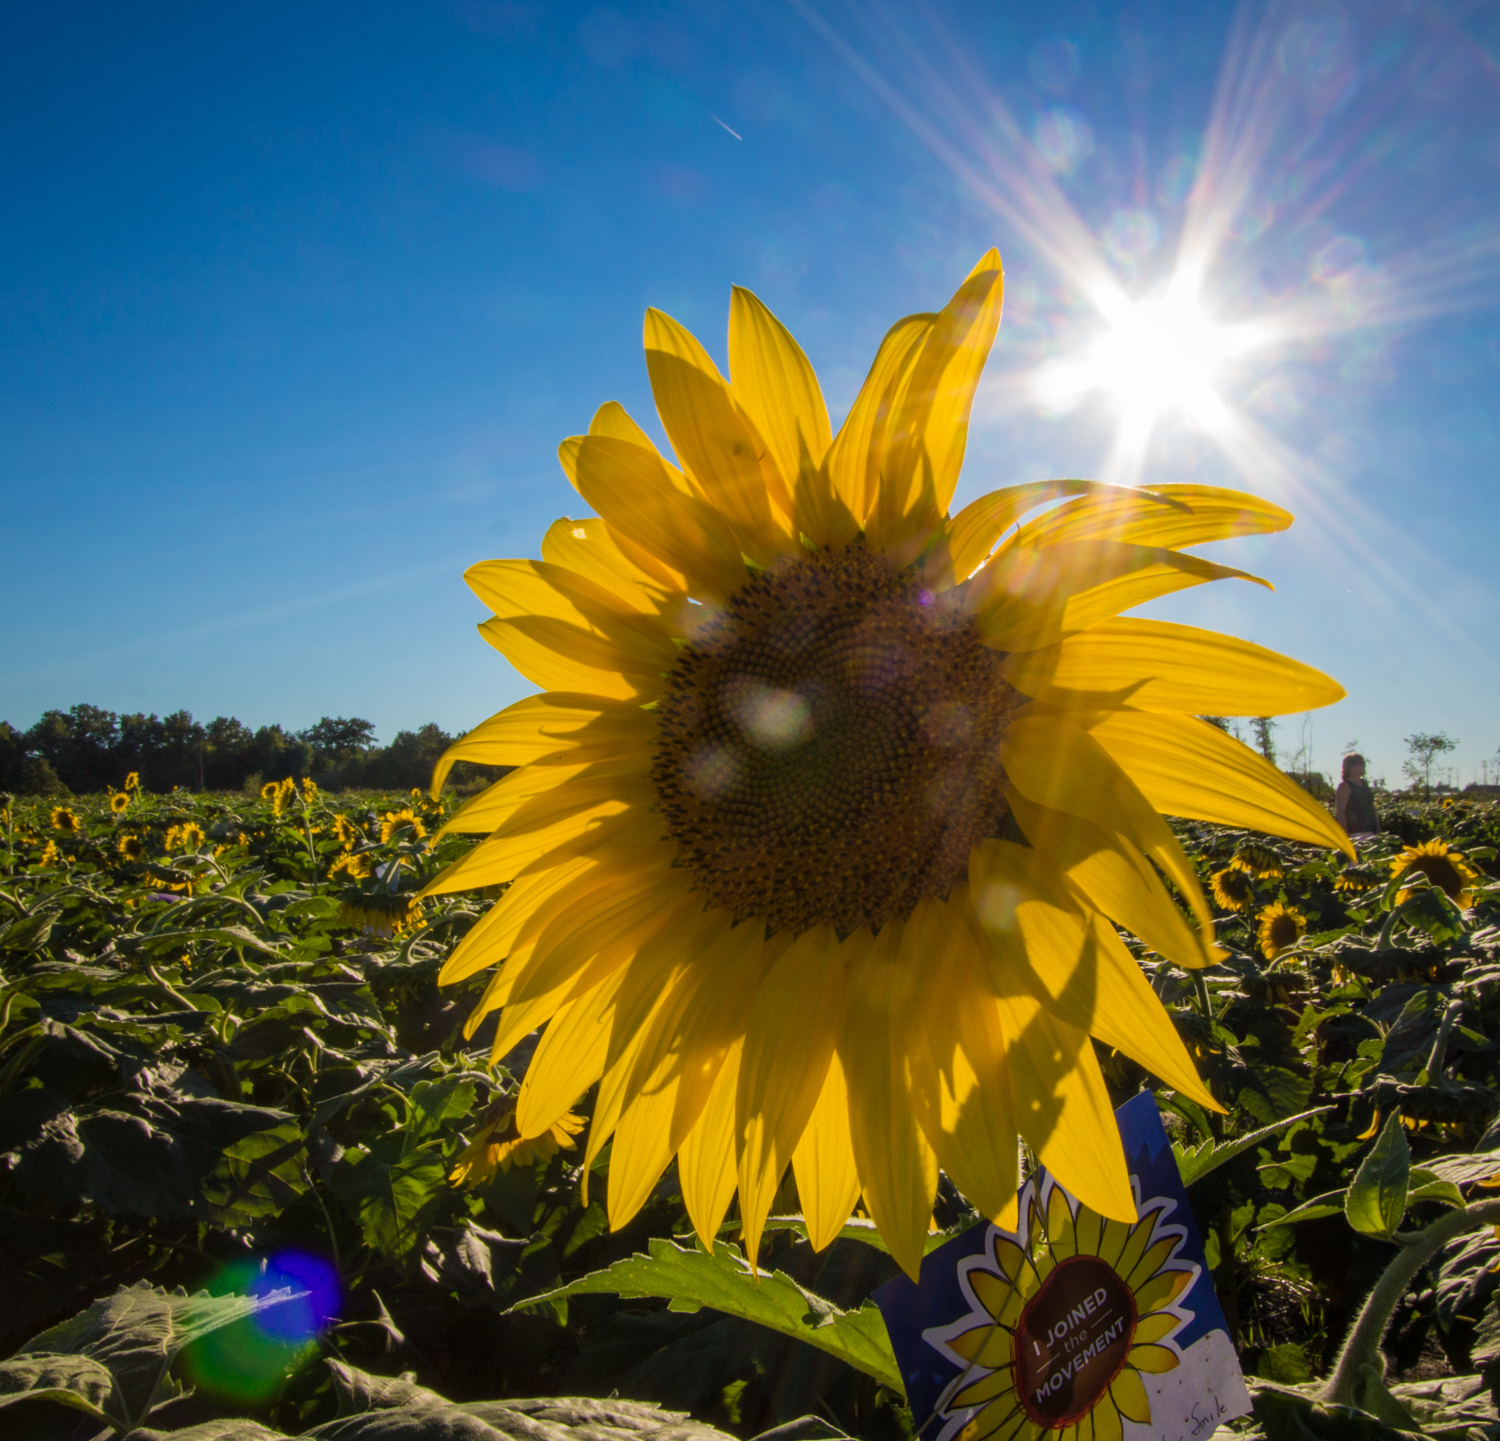 Sunflowers-102.jpg